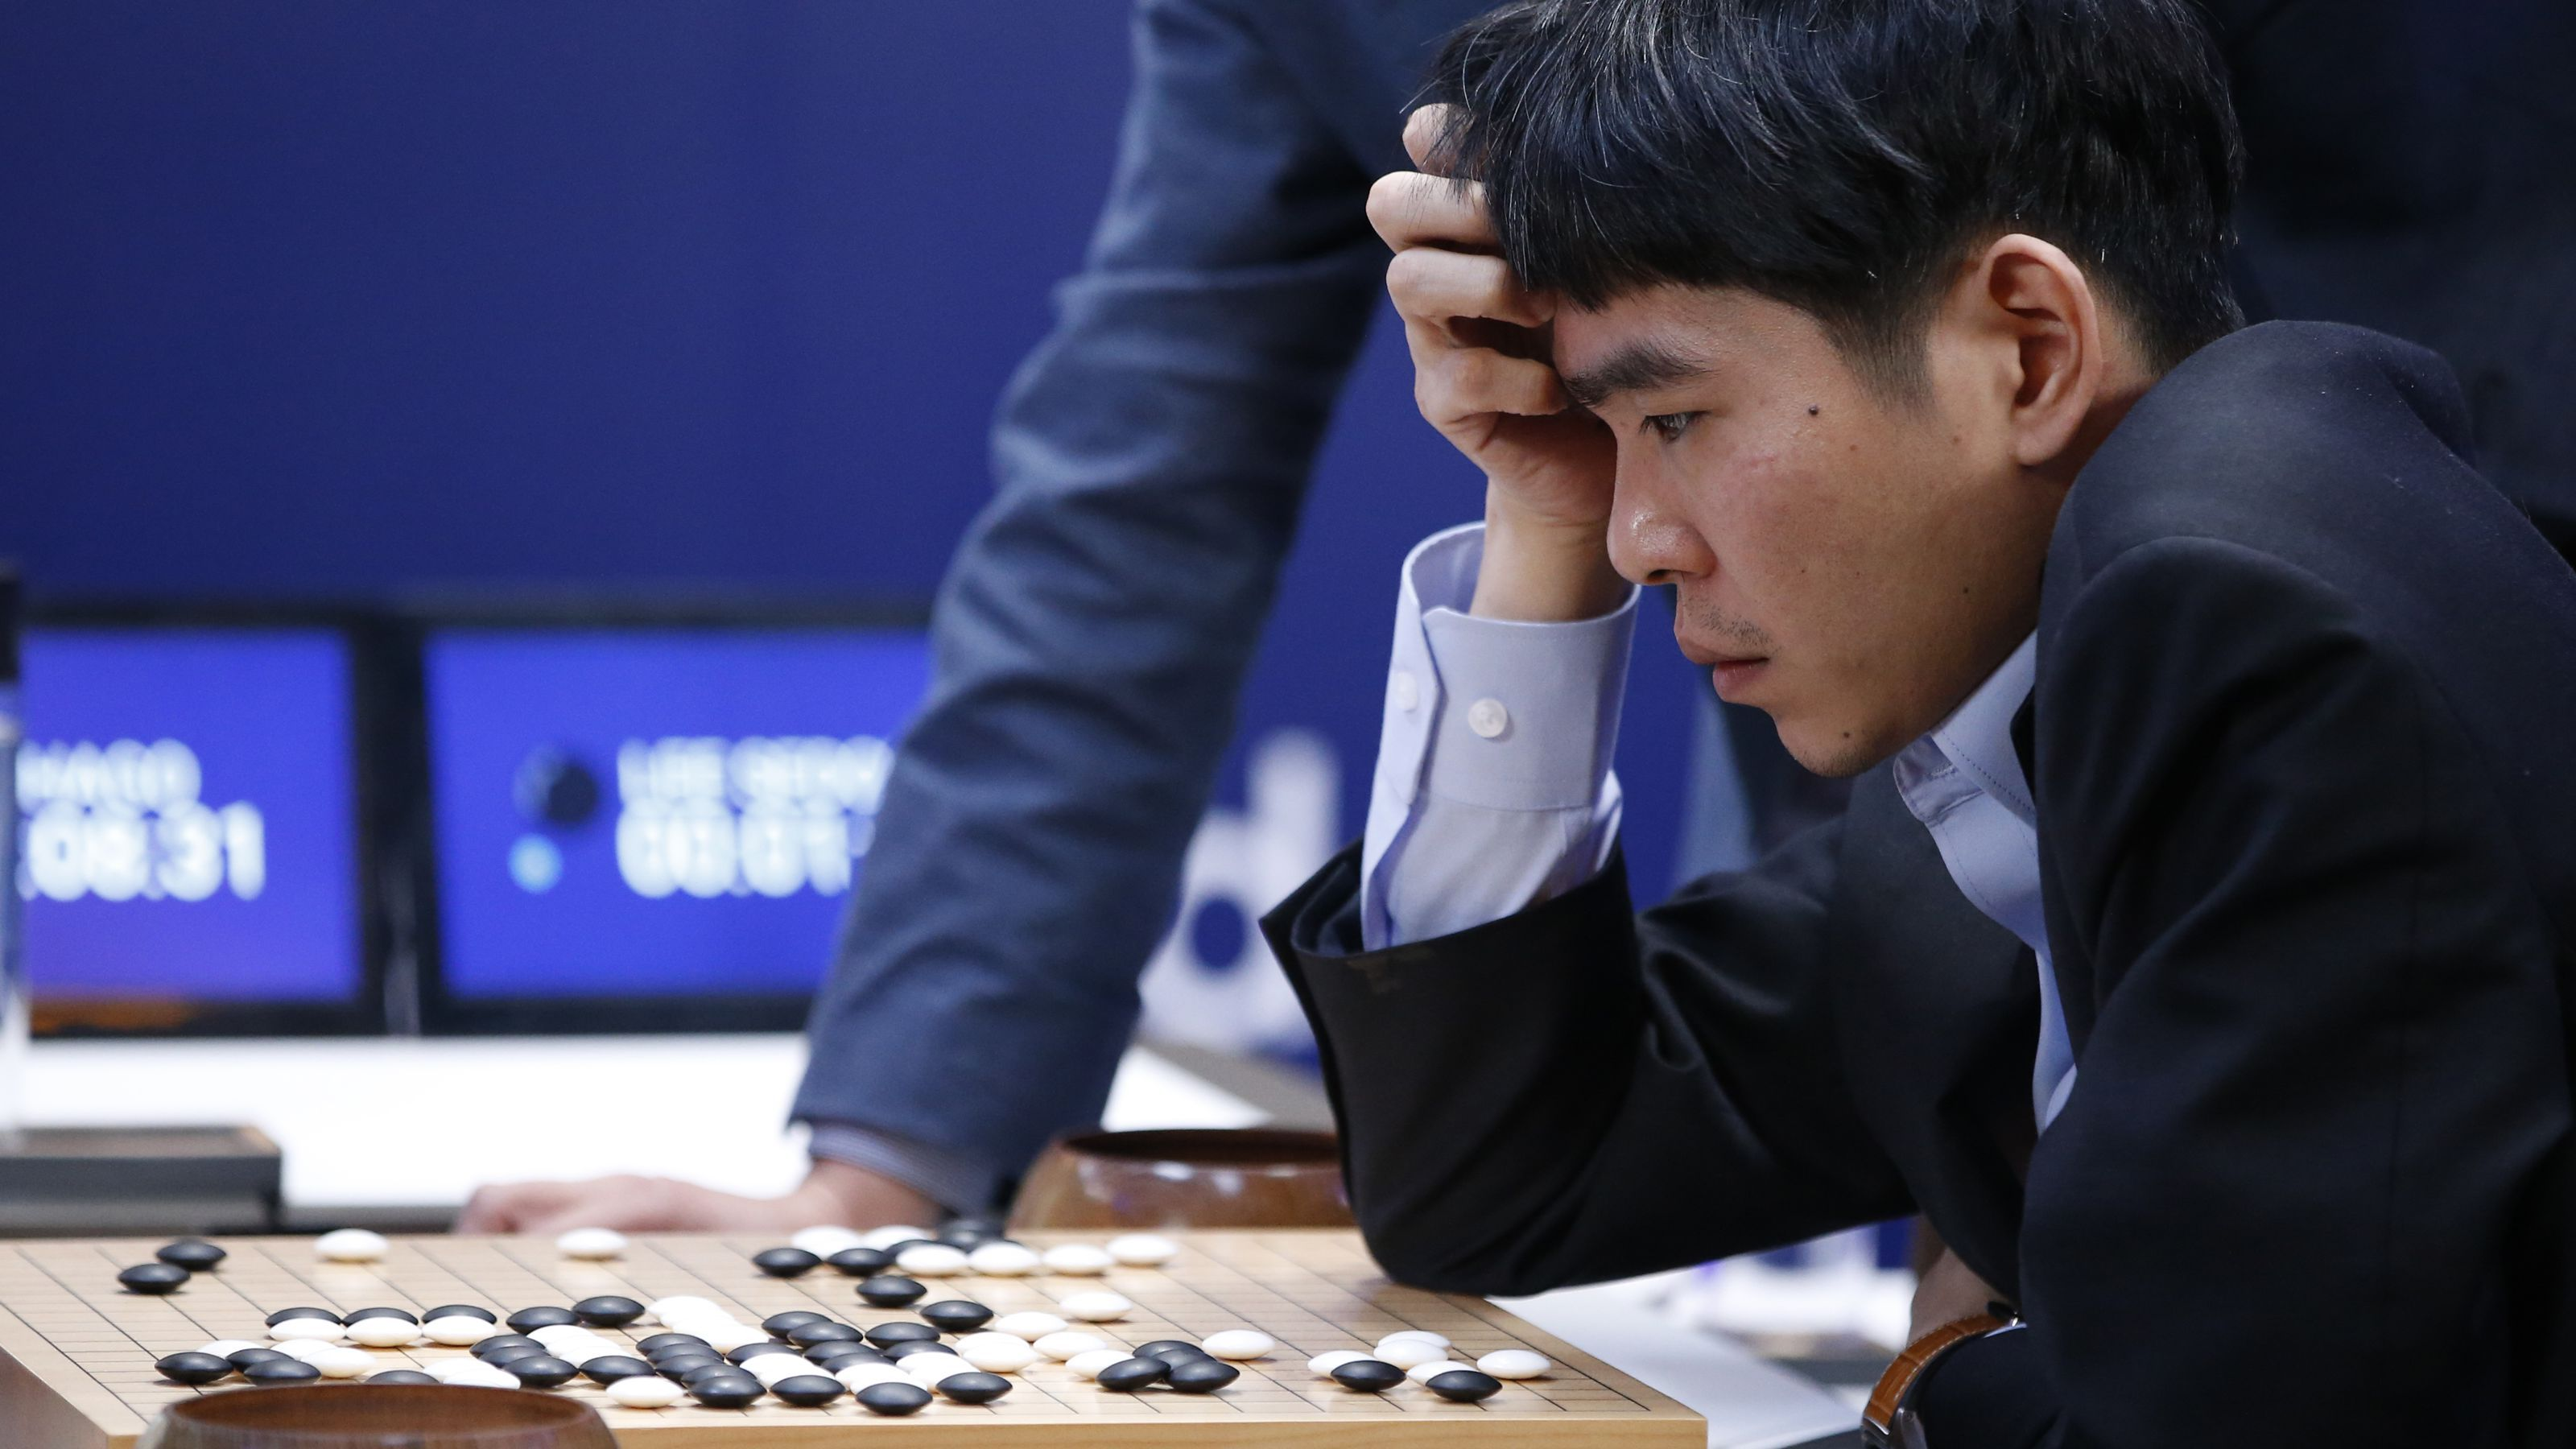 Intelligenza artificiale - AlphaGo - Gioco - Ke Jie Dotmug